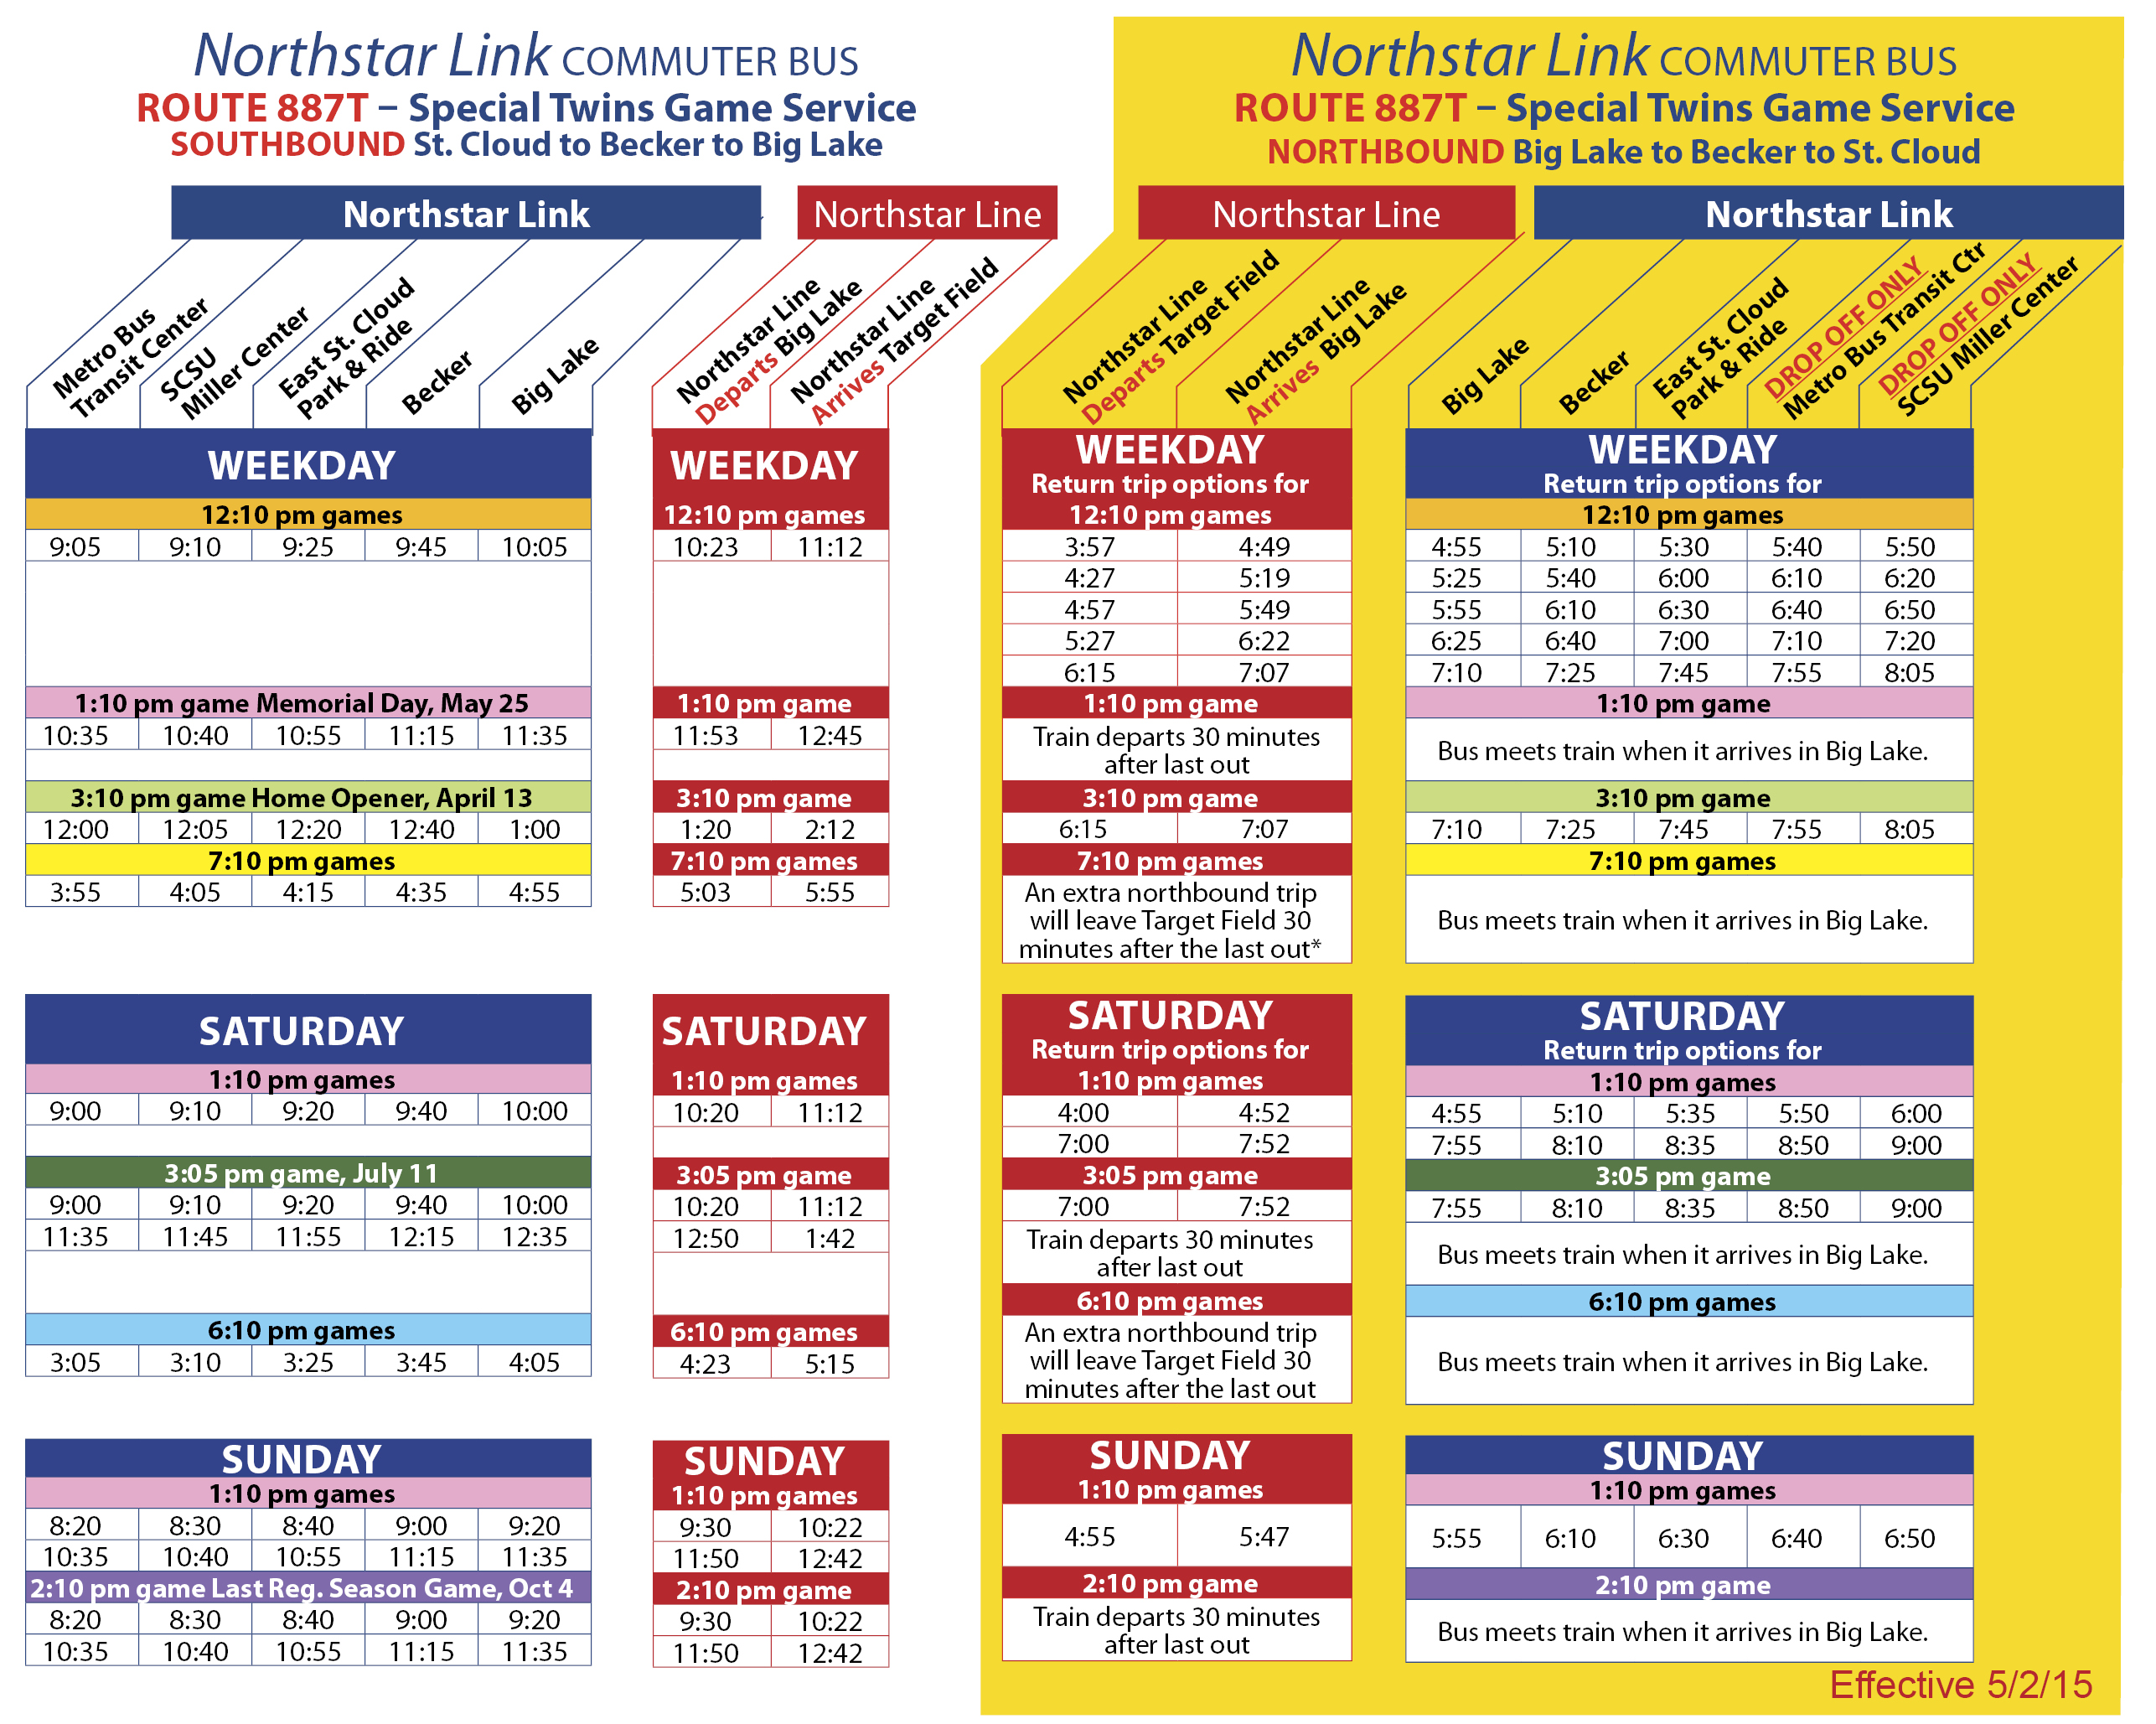 northstar link bus announces minor changes to 887 & 887t schedules